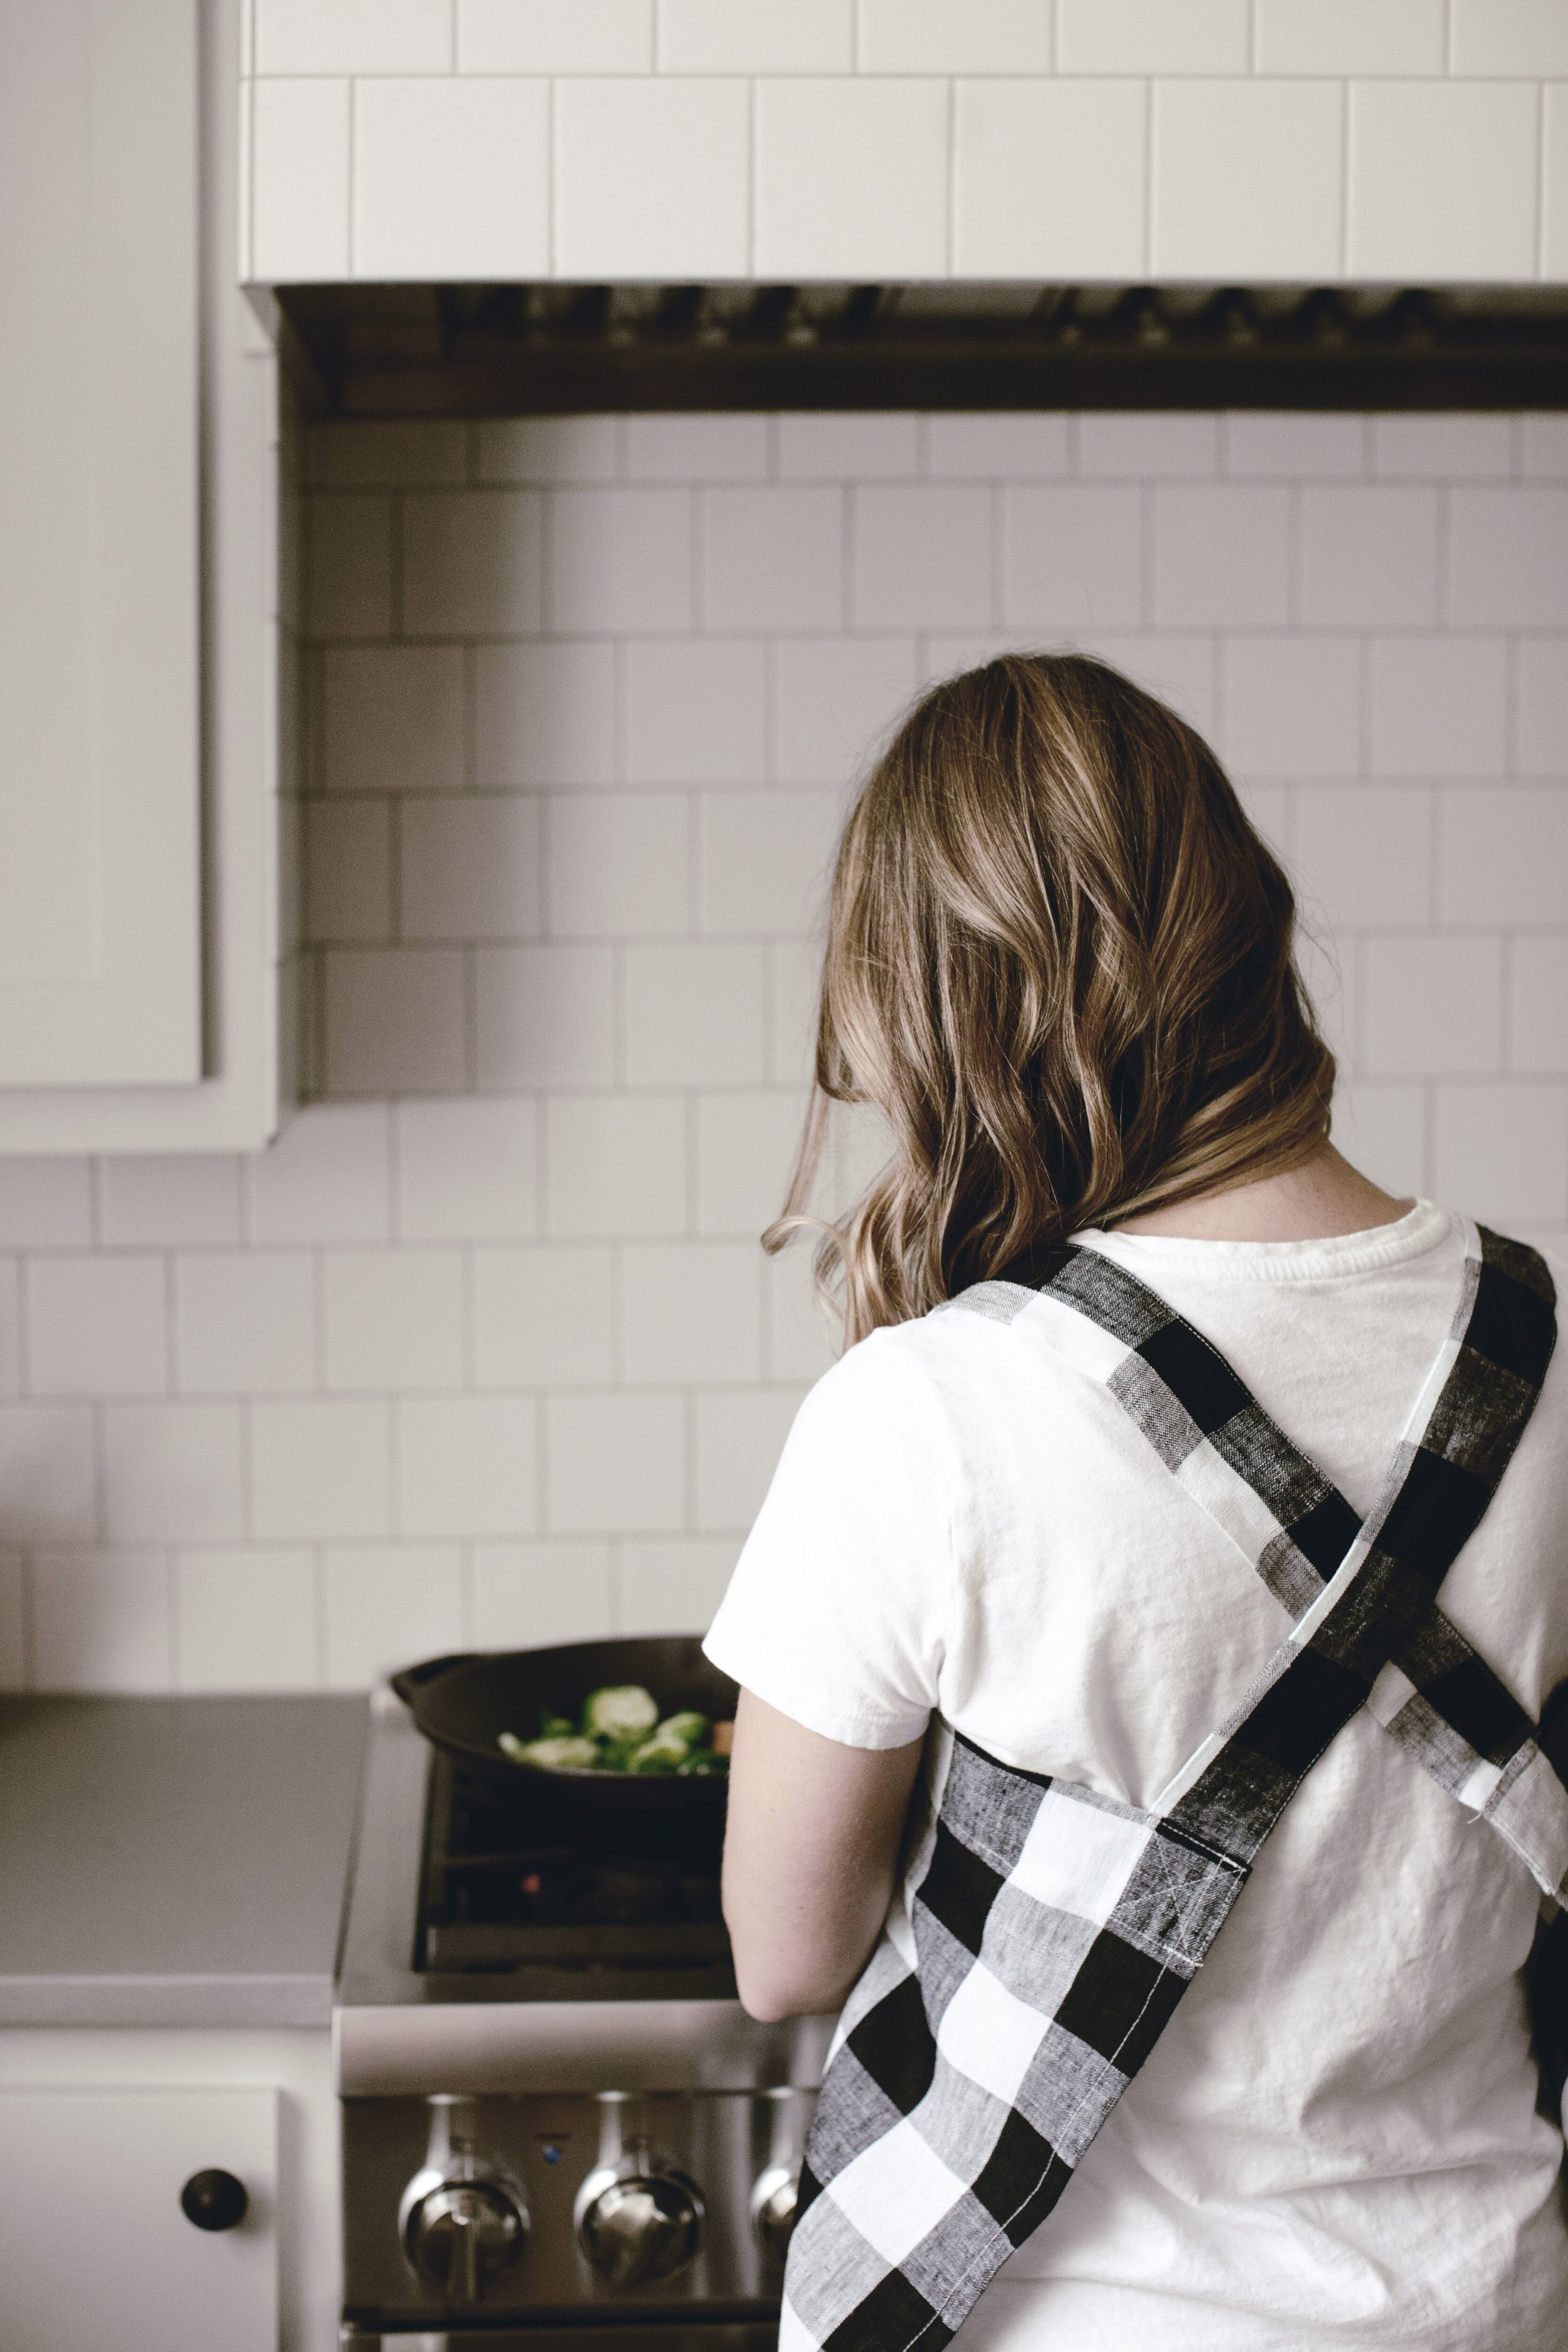 Reasons to wear an apron by heirloomed